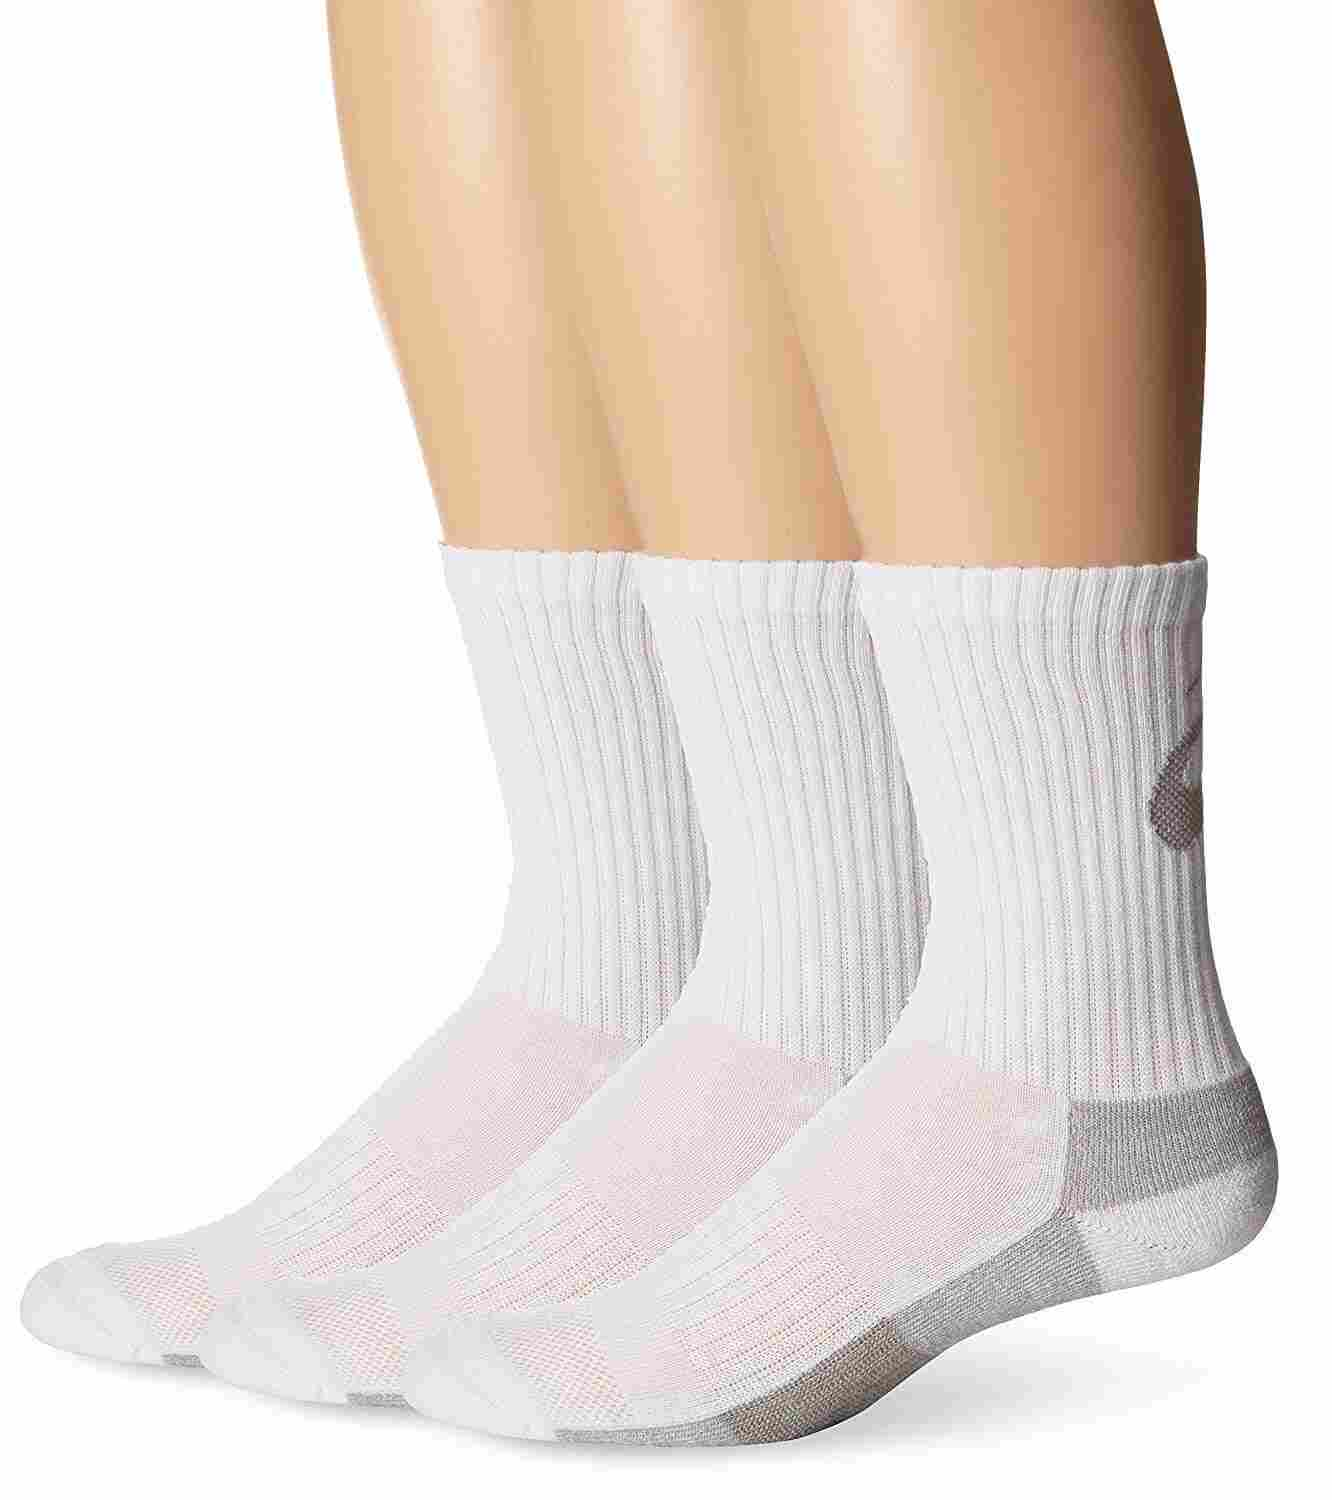 7. Unisex Contend Training Crew Socks